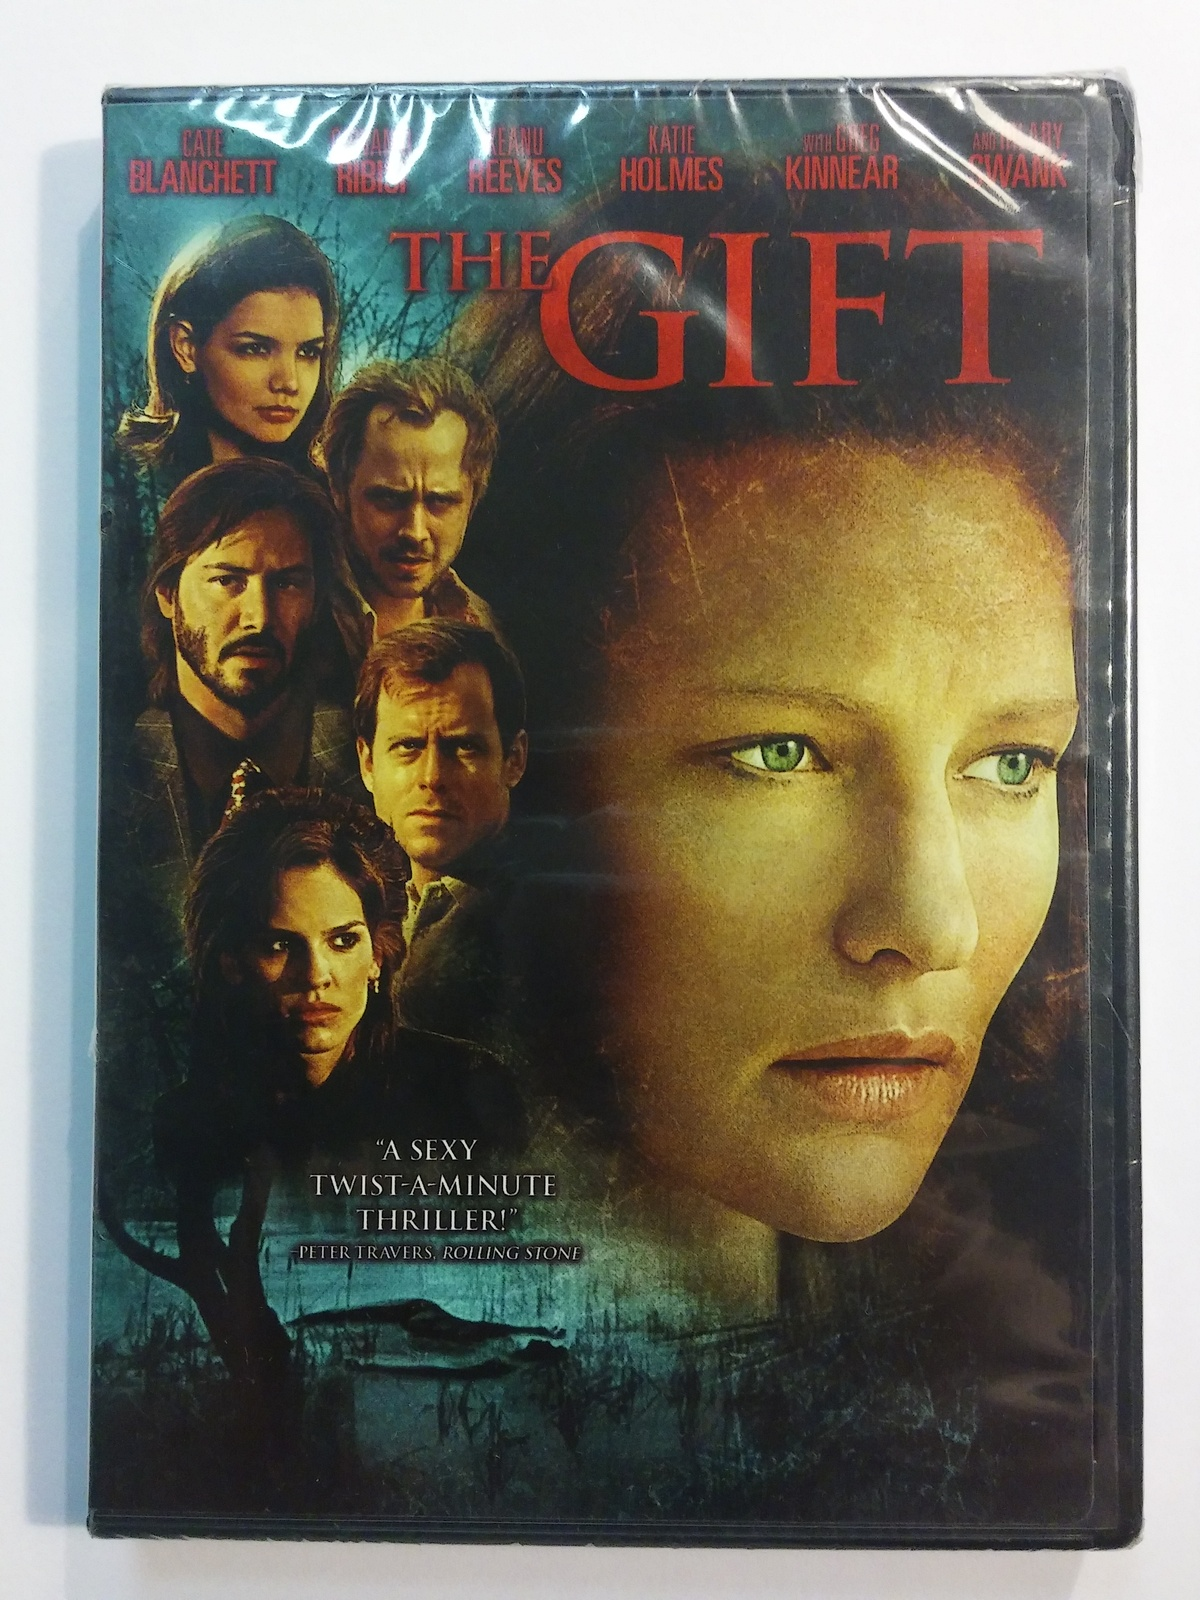 The Gift [DVD, 2000] Kate Blanchett - Katie Holmes - Keanu Reeves - Greg Kinnear